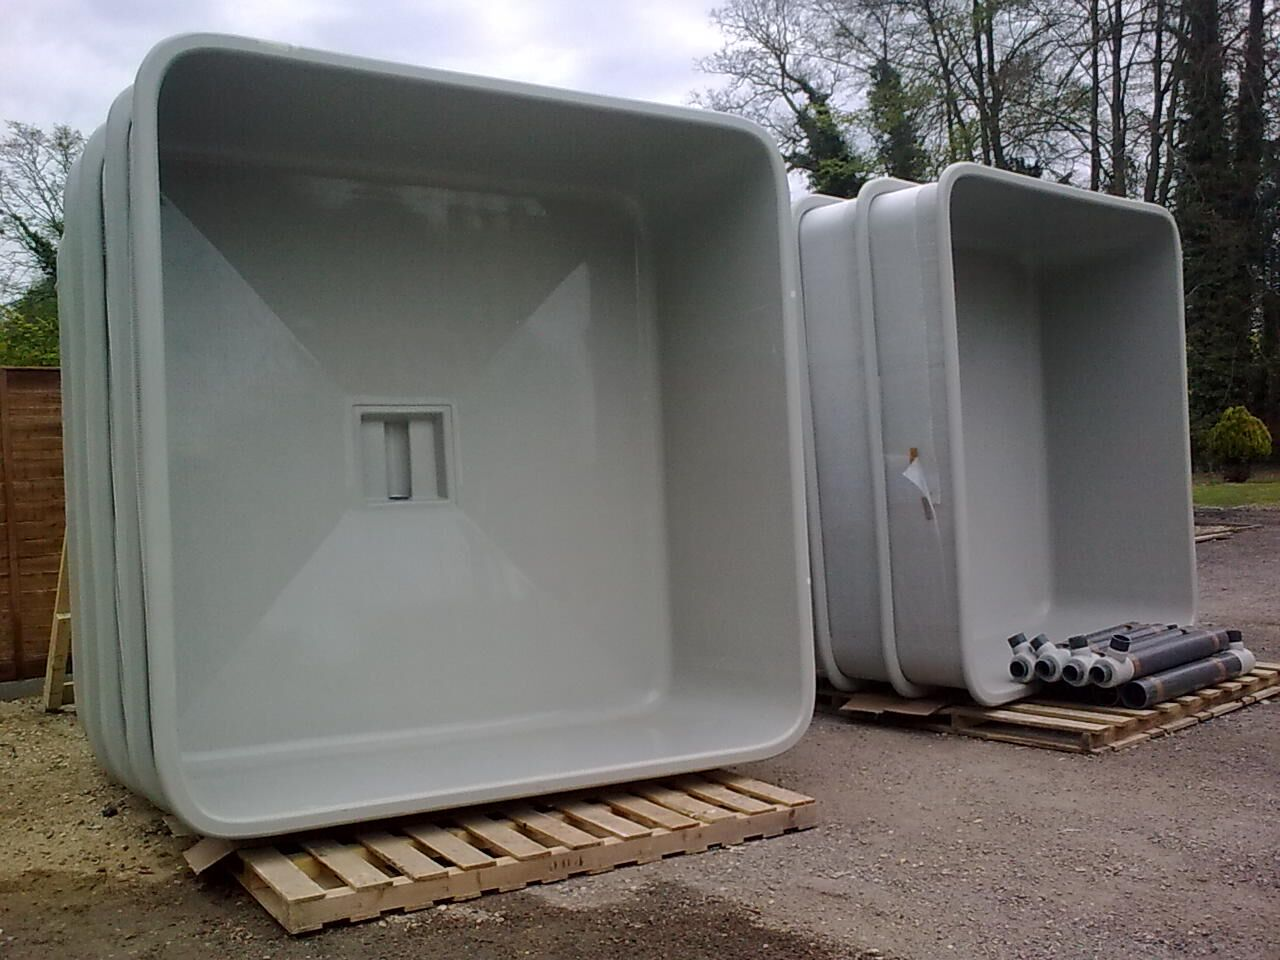 Square tanks purewell fish farming equipment ltd for Square fish tank